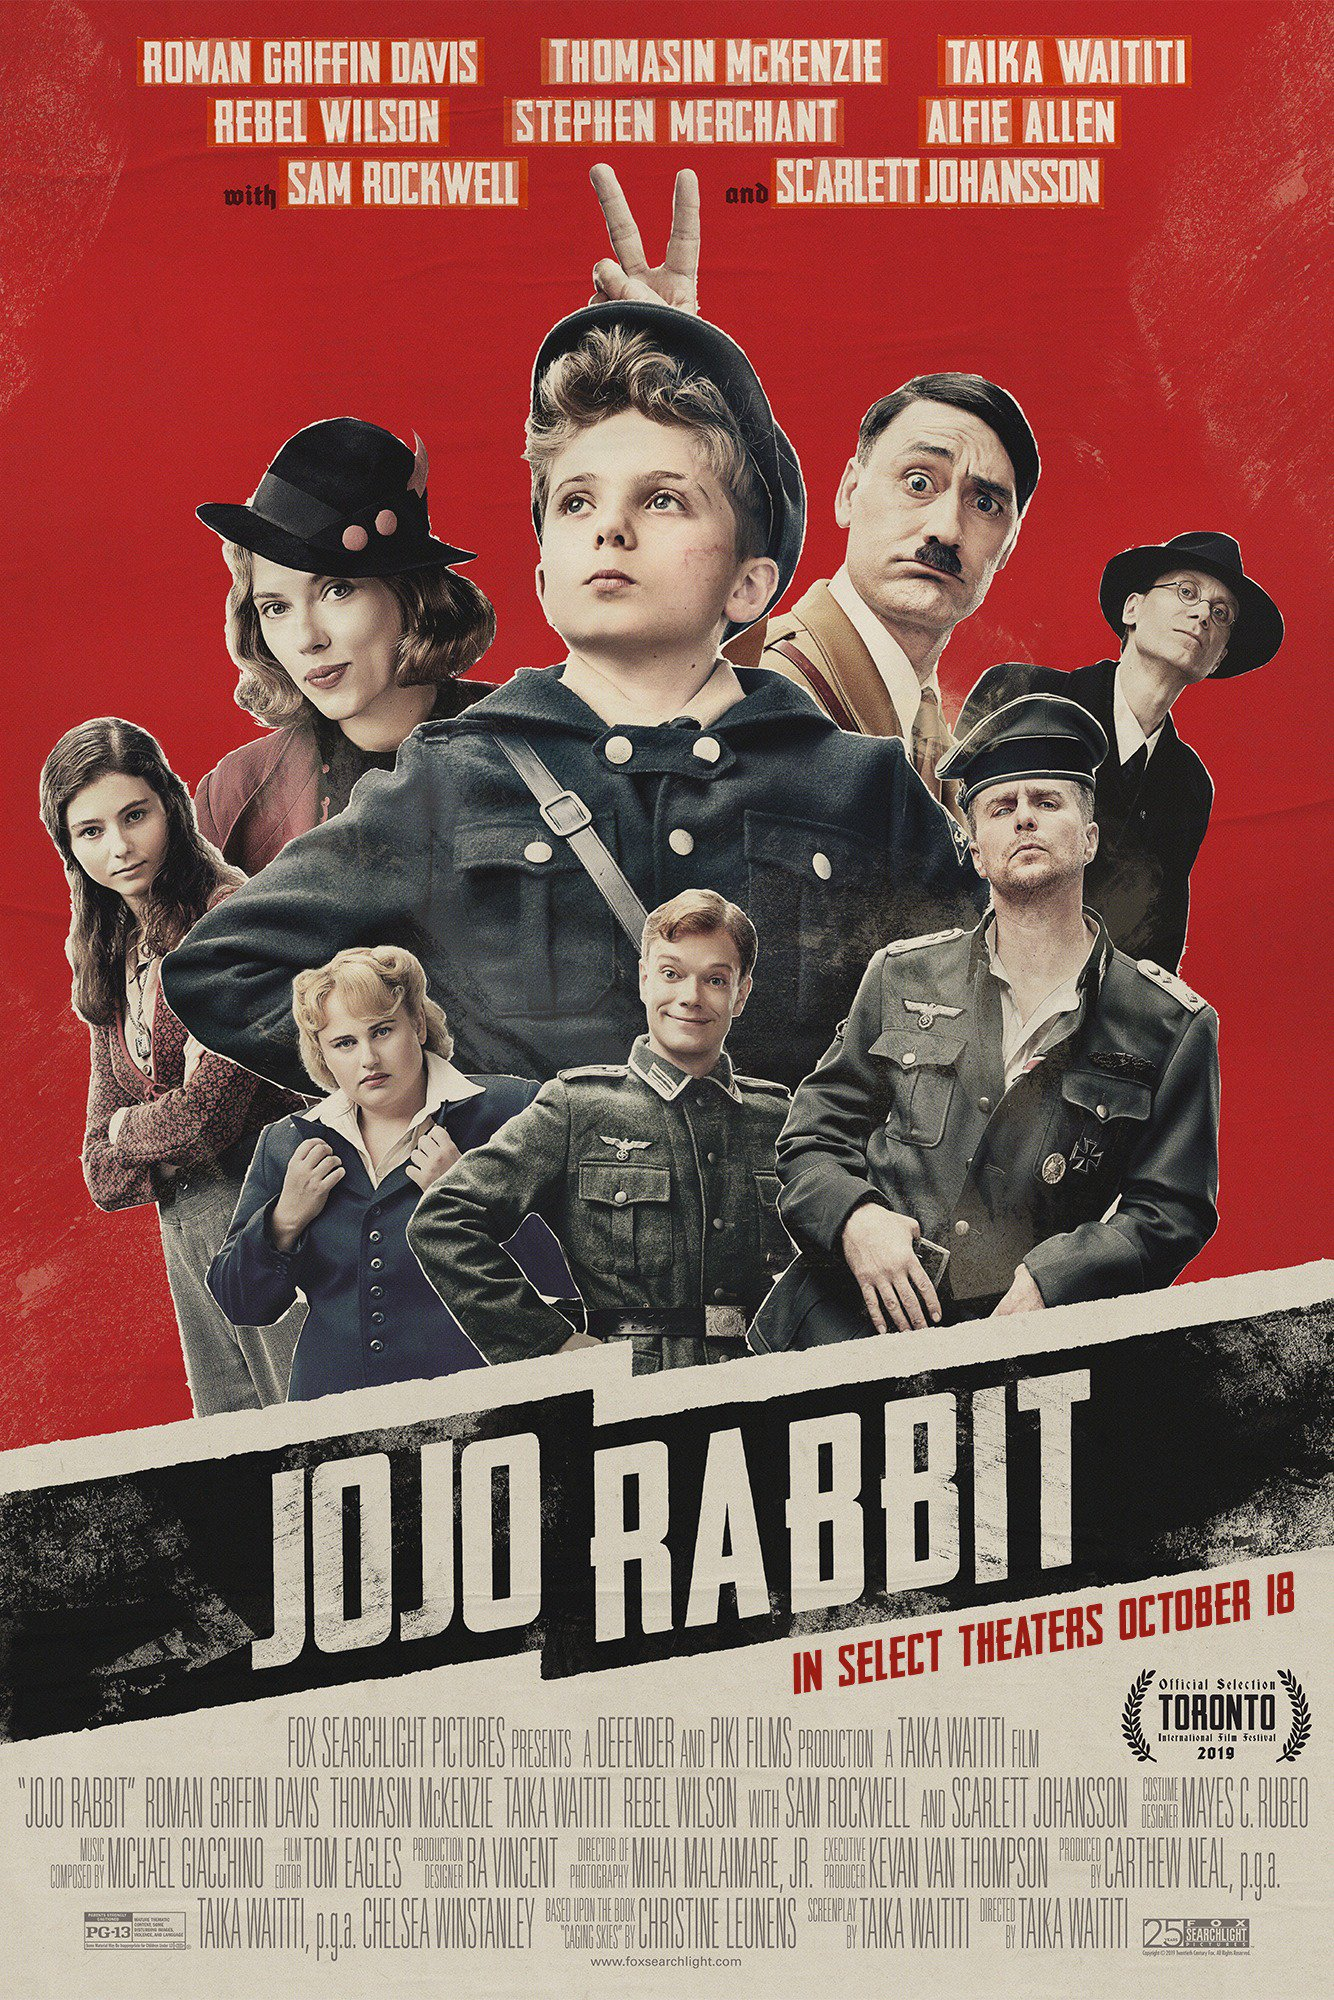 Promotional poster for JOJO RABBIT.